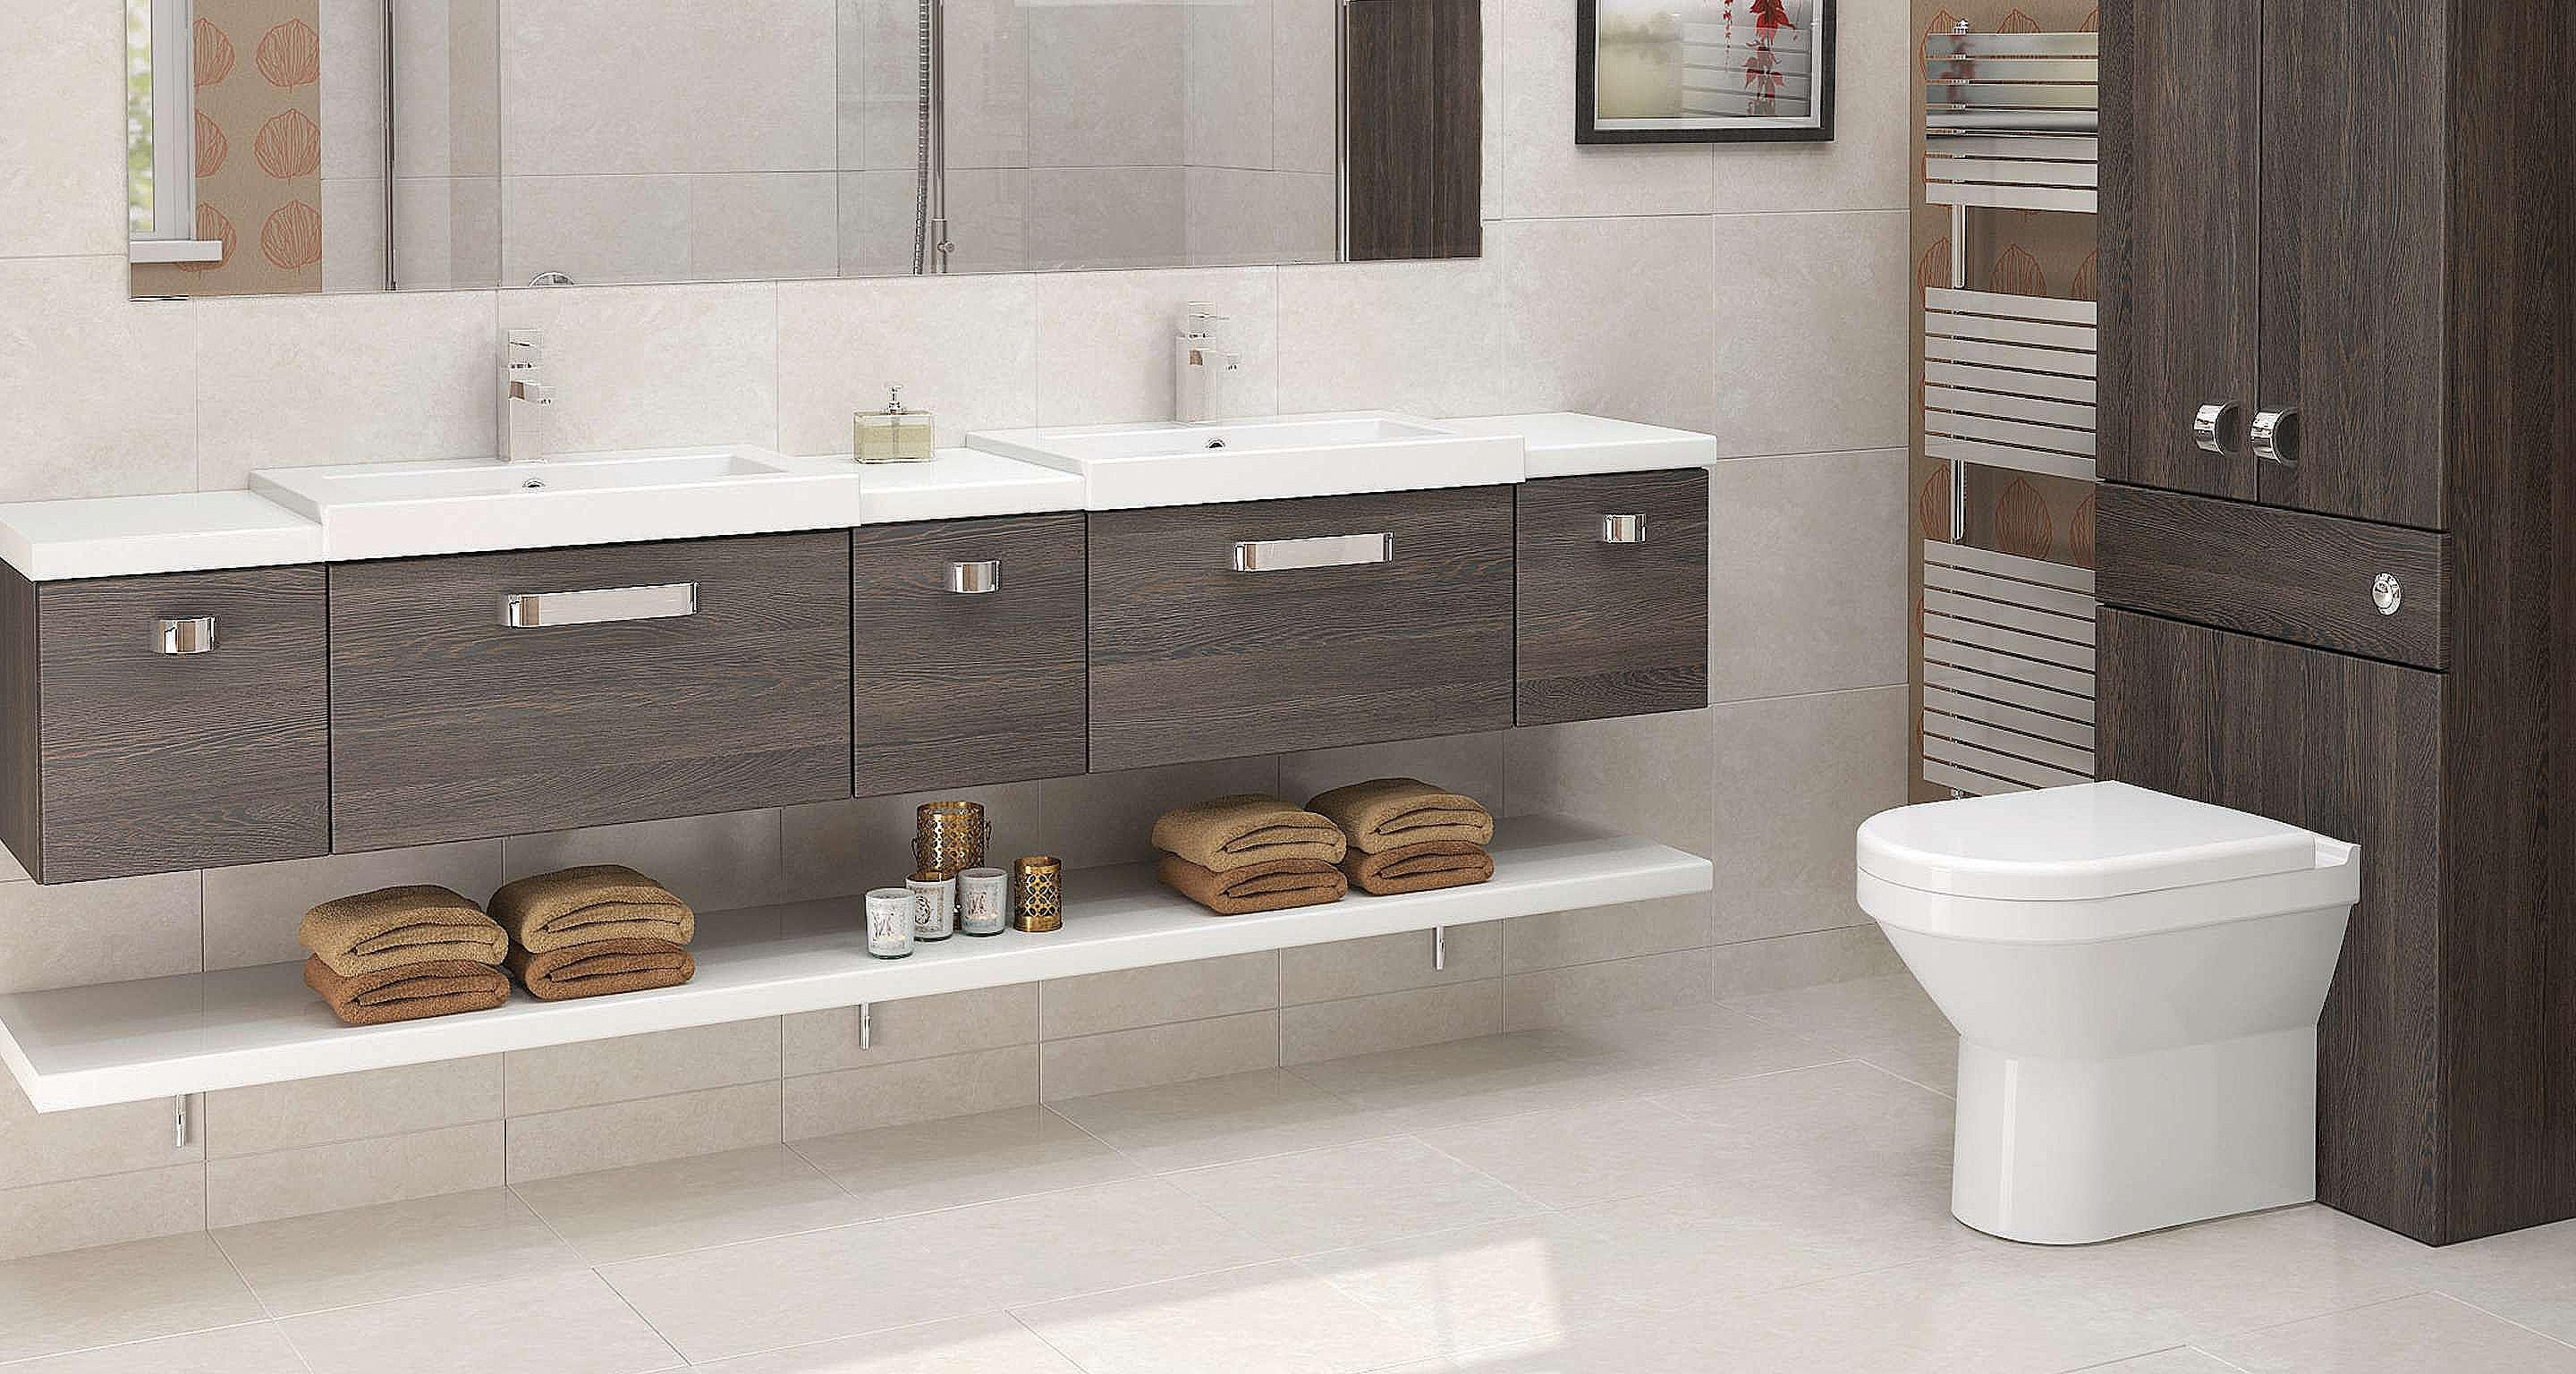 Lovely Ensuite Bathroom Designs For Small Spaces Ensuitebathroomdefinition Ensuitebathroombedeutung Ensuitebathroomdeutsch Ens Interior Design In 2019 Bathroom Furniture Small Space Bathroom Ensuite Bathrooms